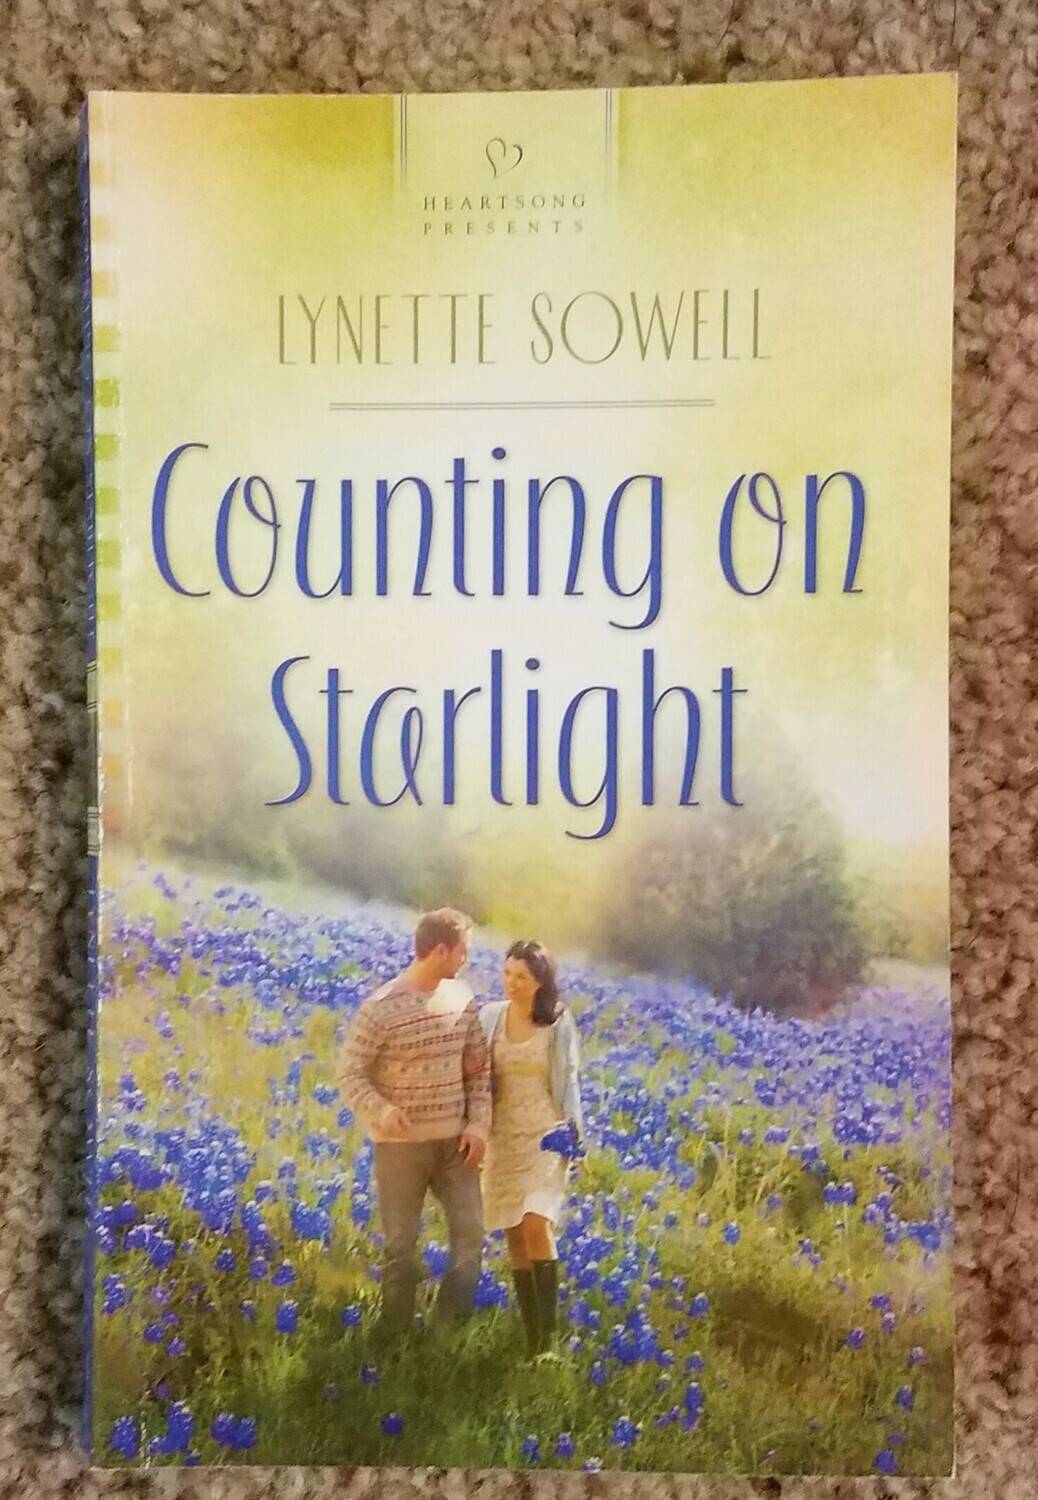 Counting on Starlight by Lynette Sowell